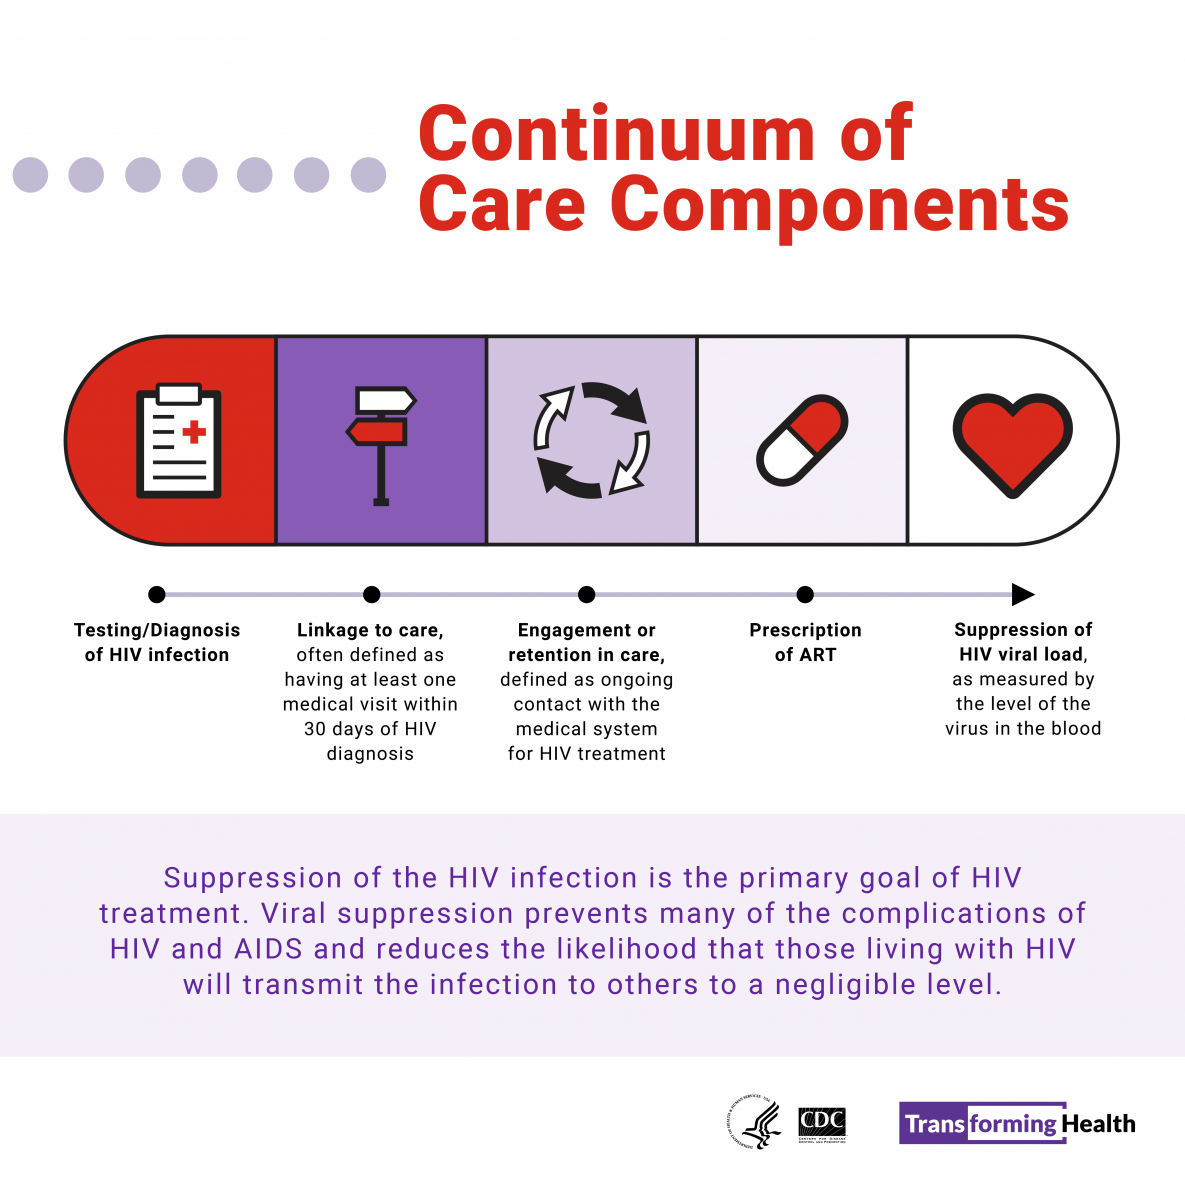 Continuum of Care Components